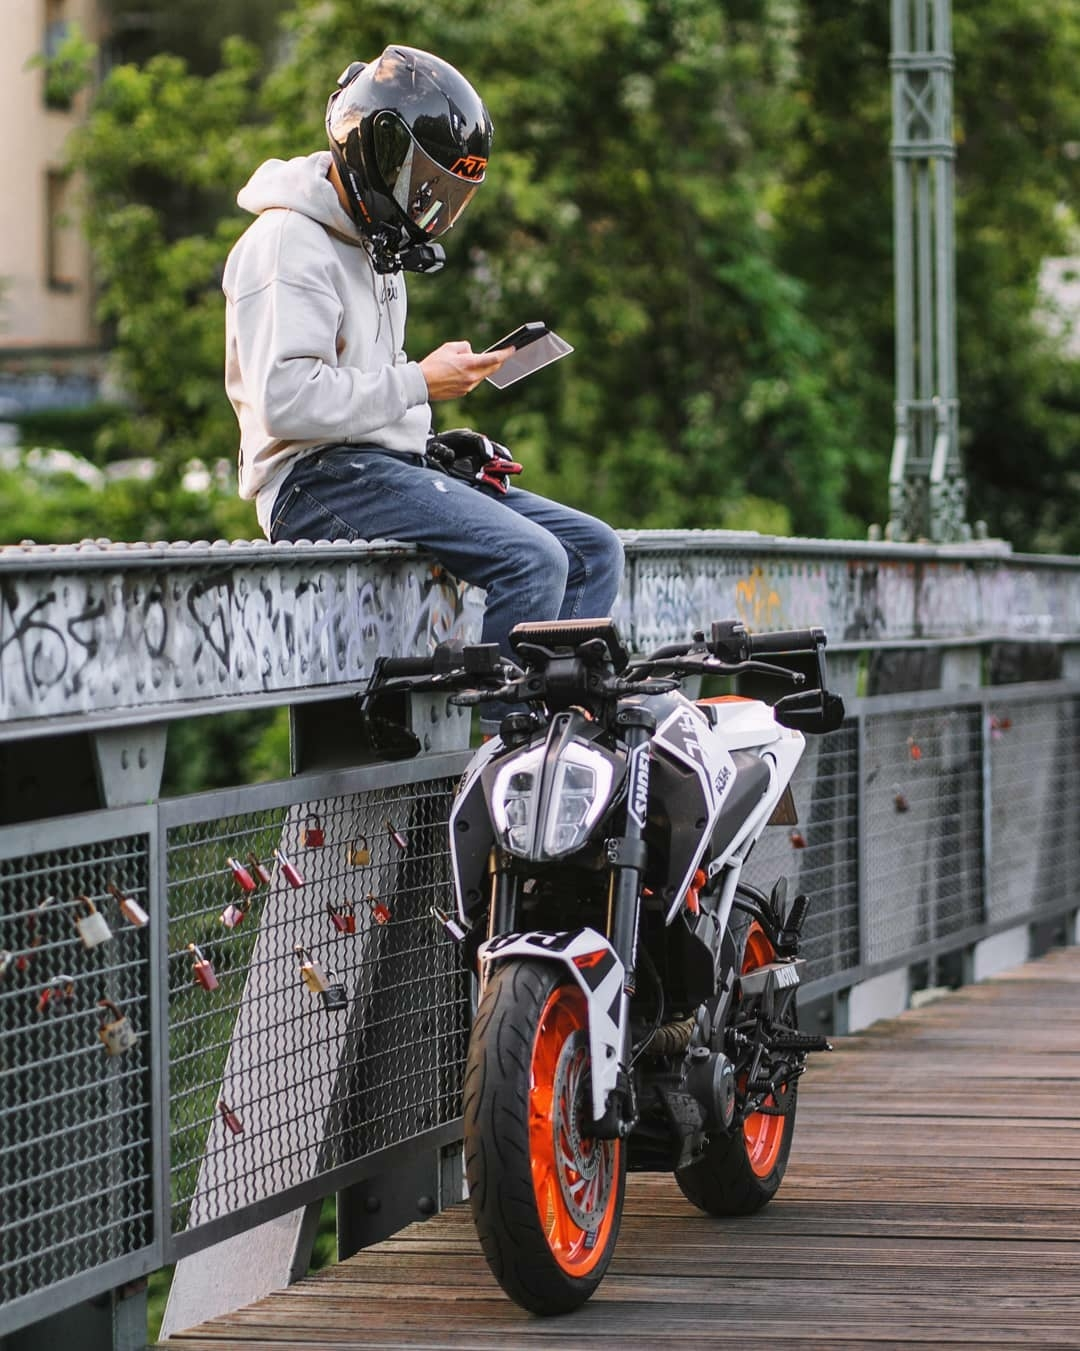 man checking his phone while sitting on bridge with helmet on and motorcycle near by